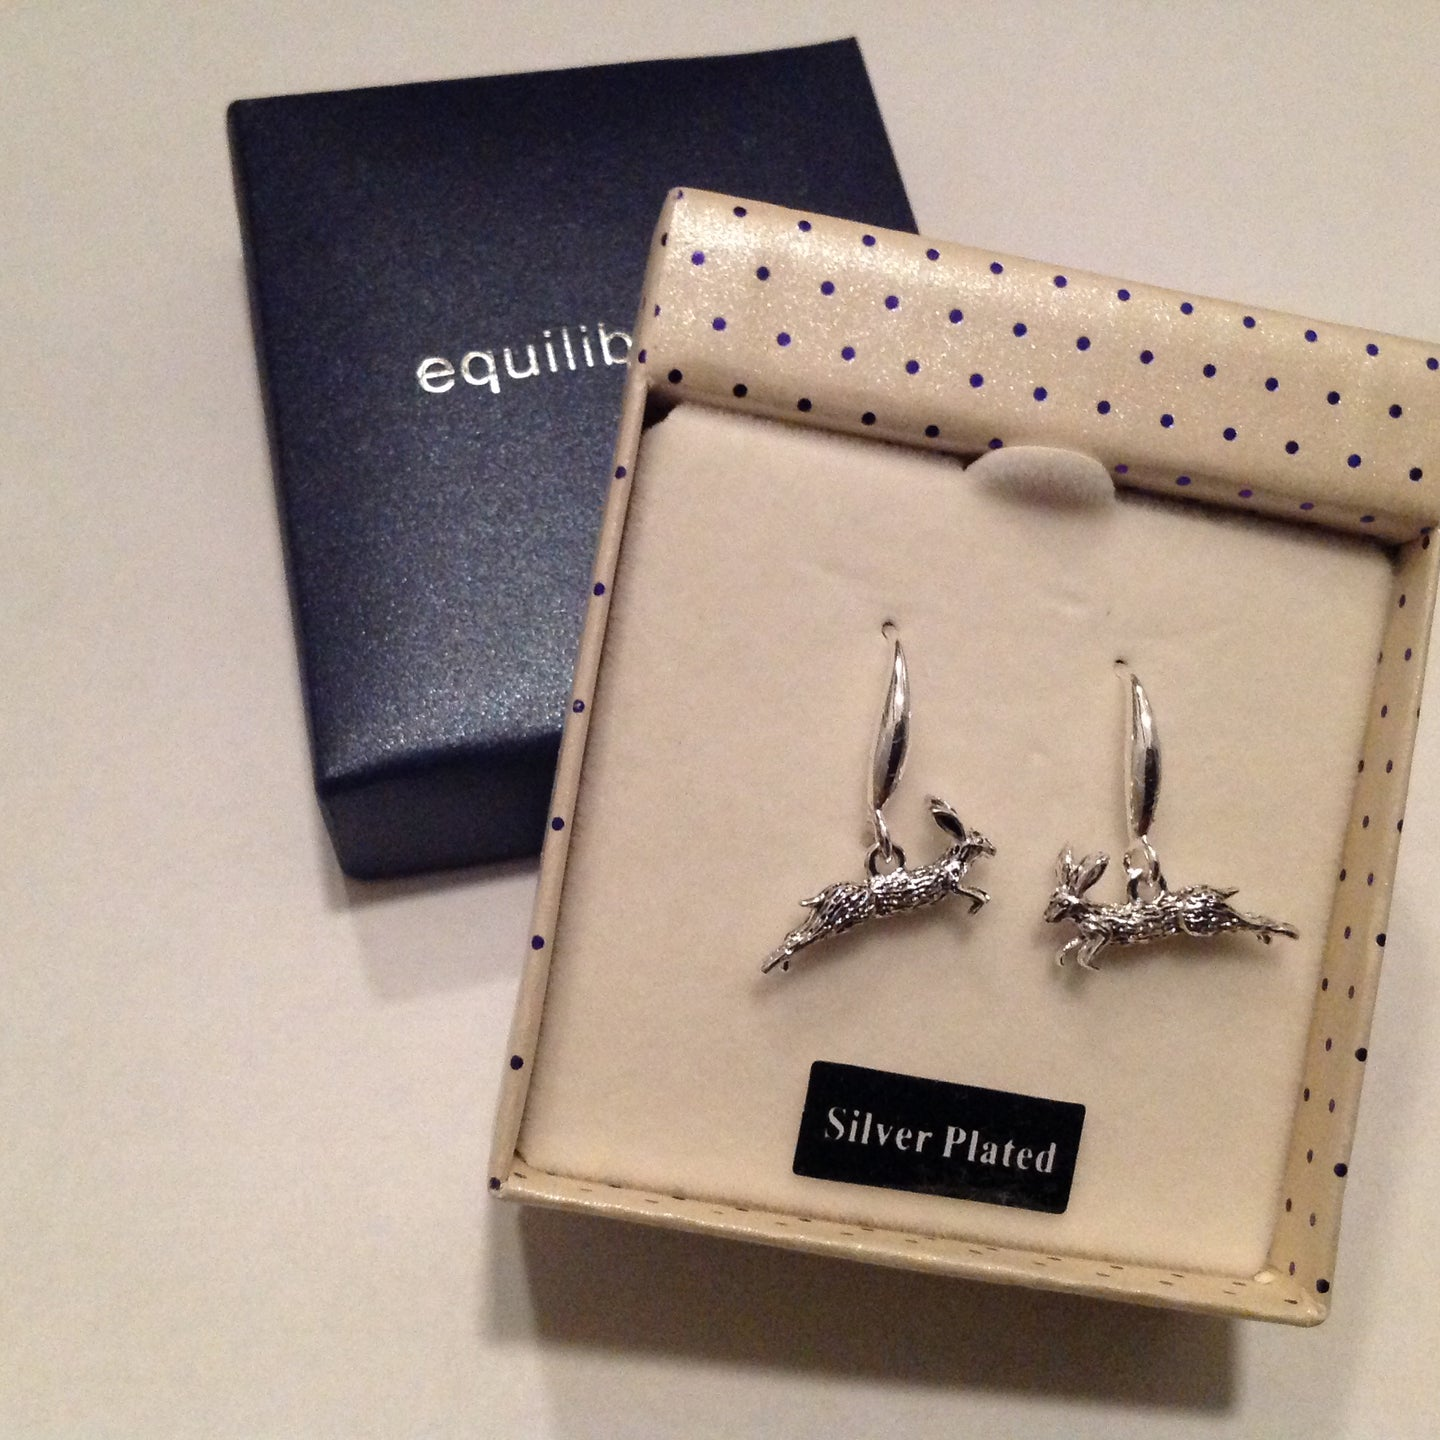 Silver Plated Hare Earrings in Gift Box